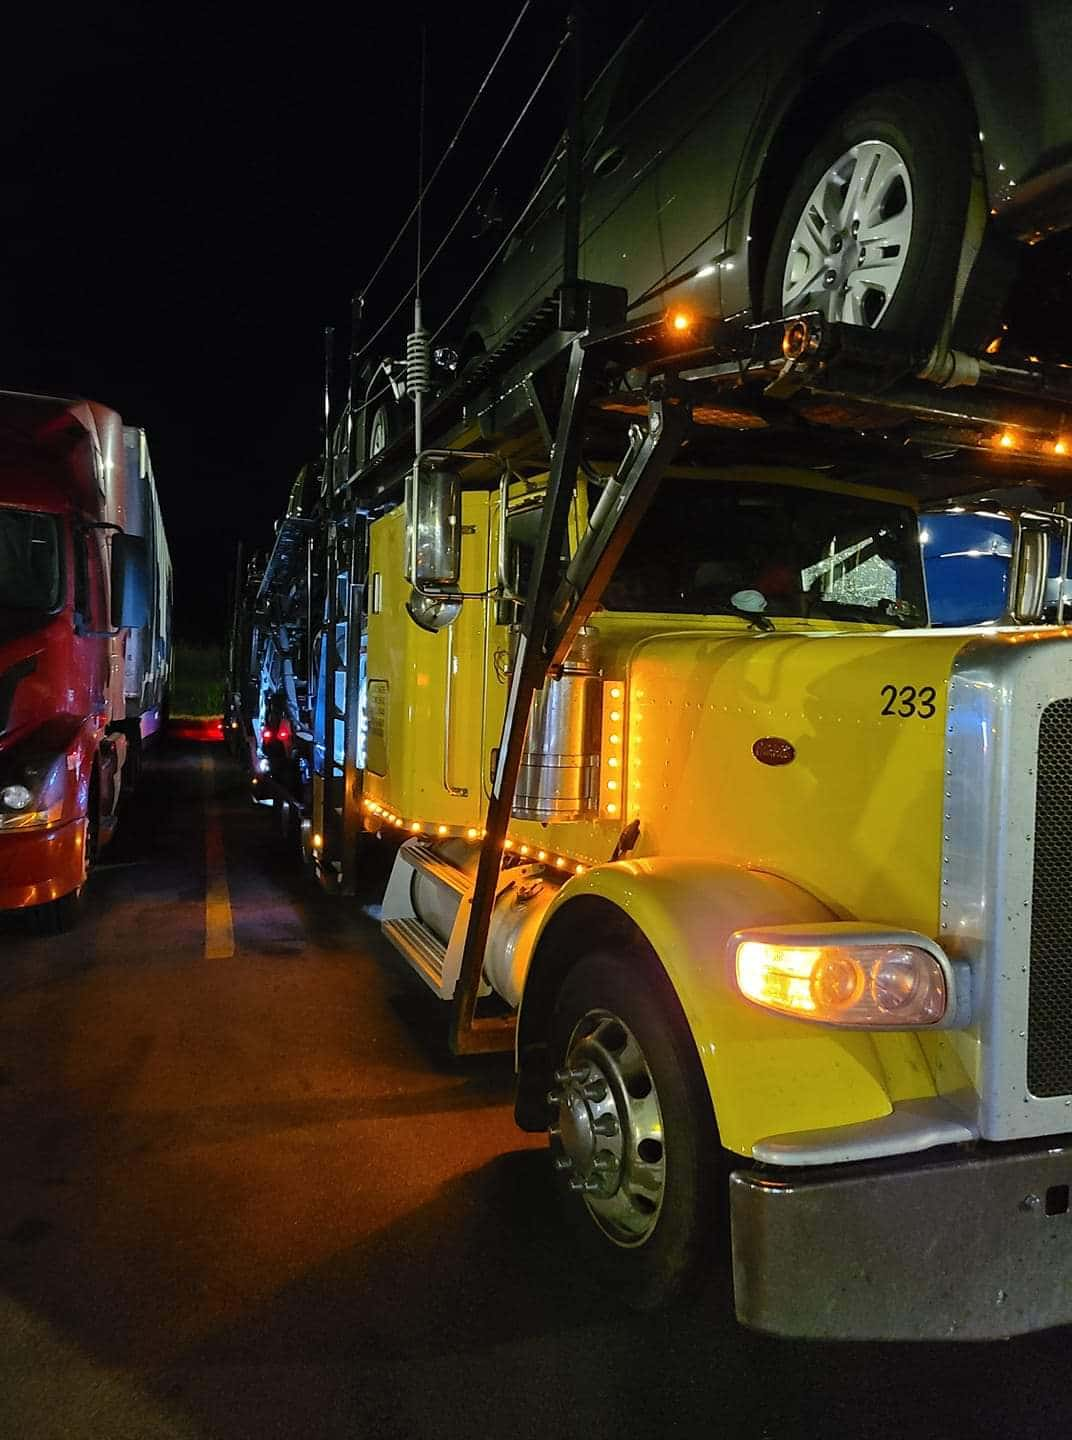 parked car carrier with lights on